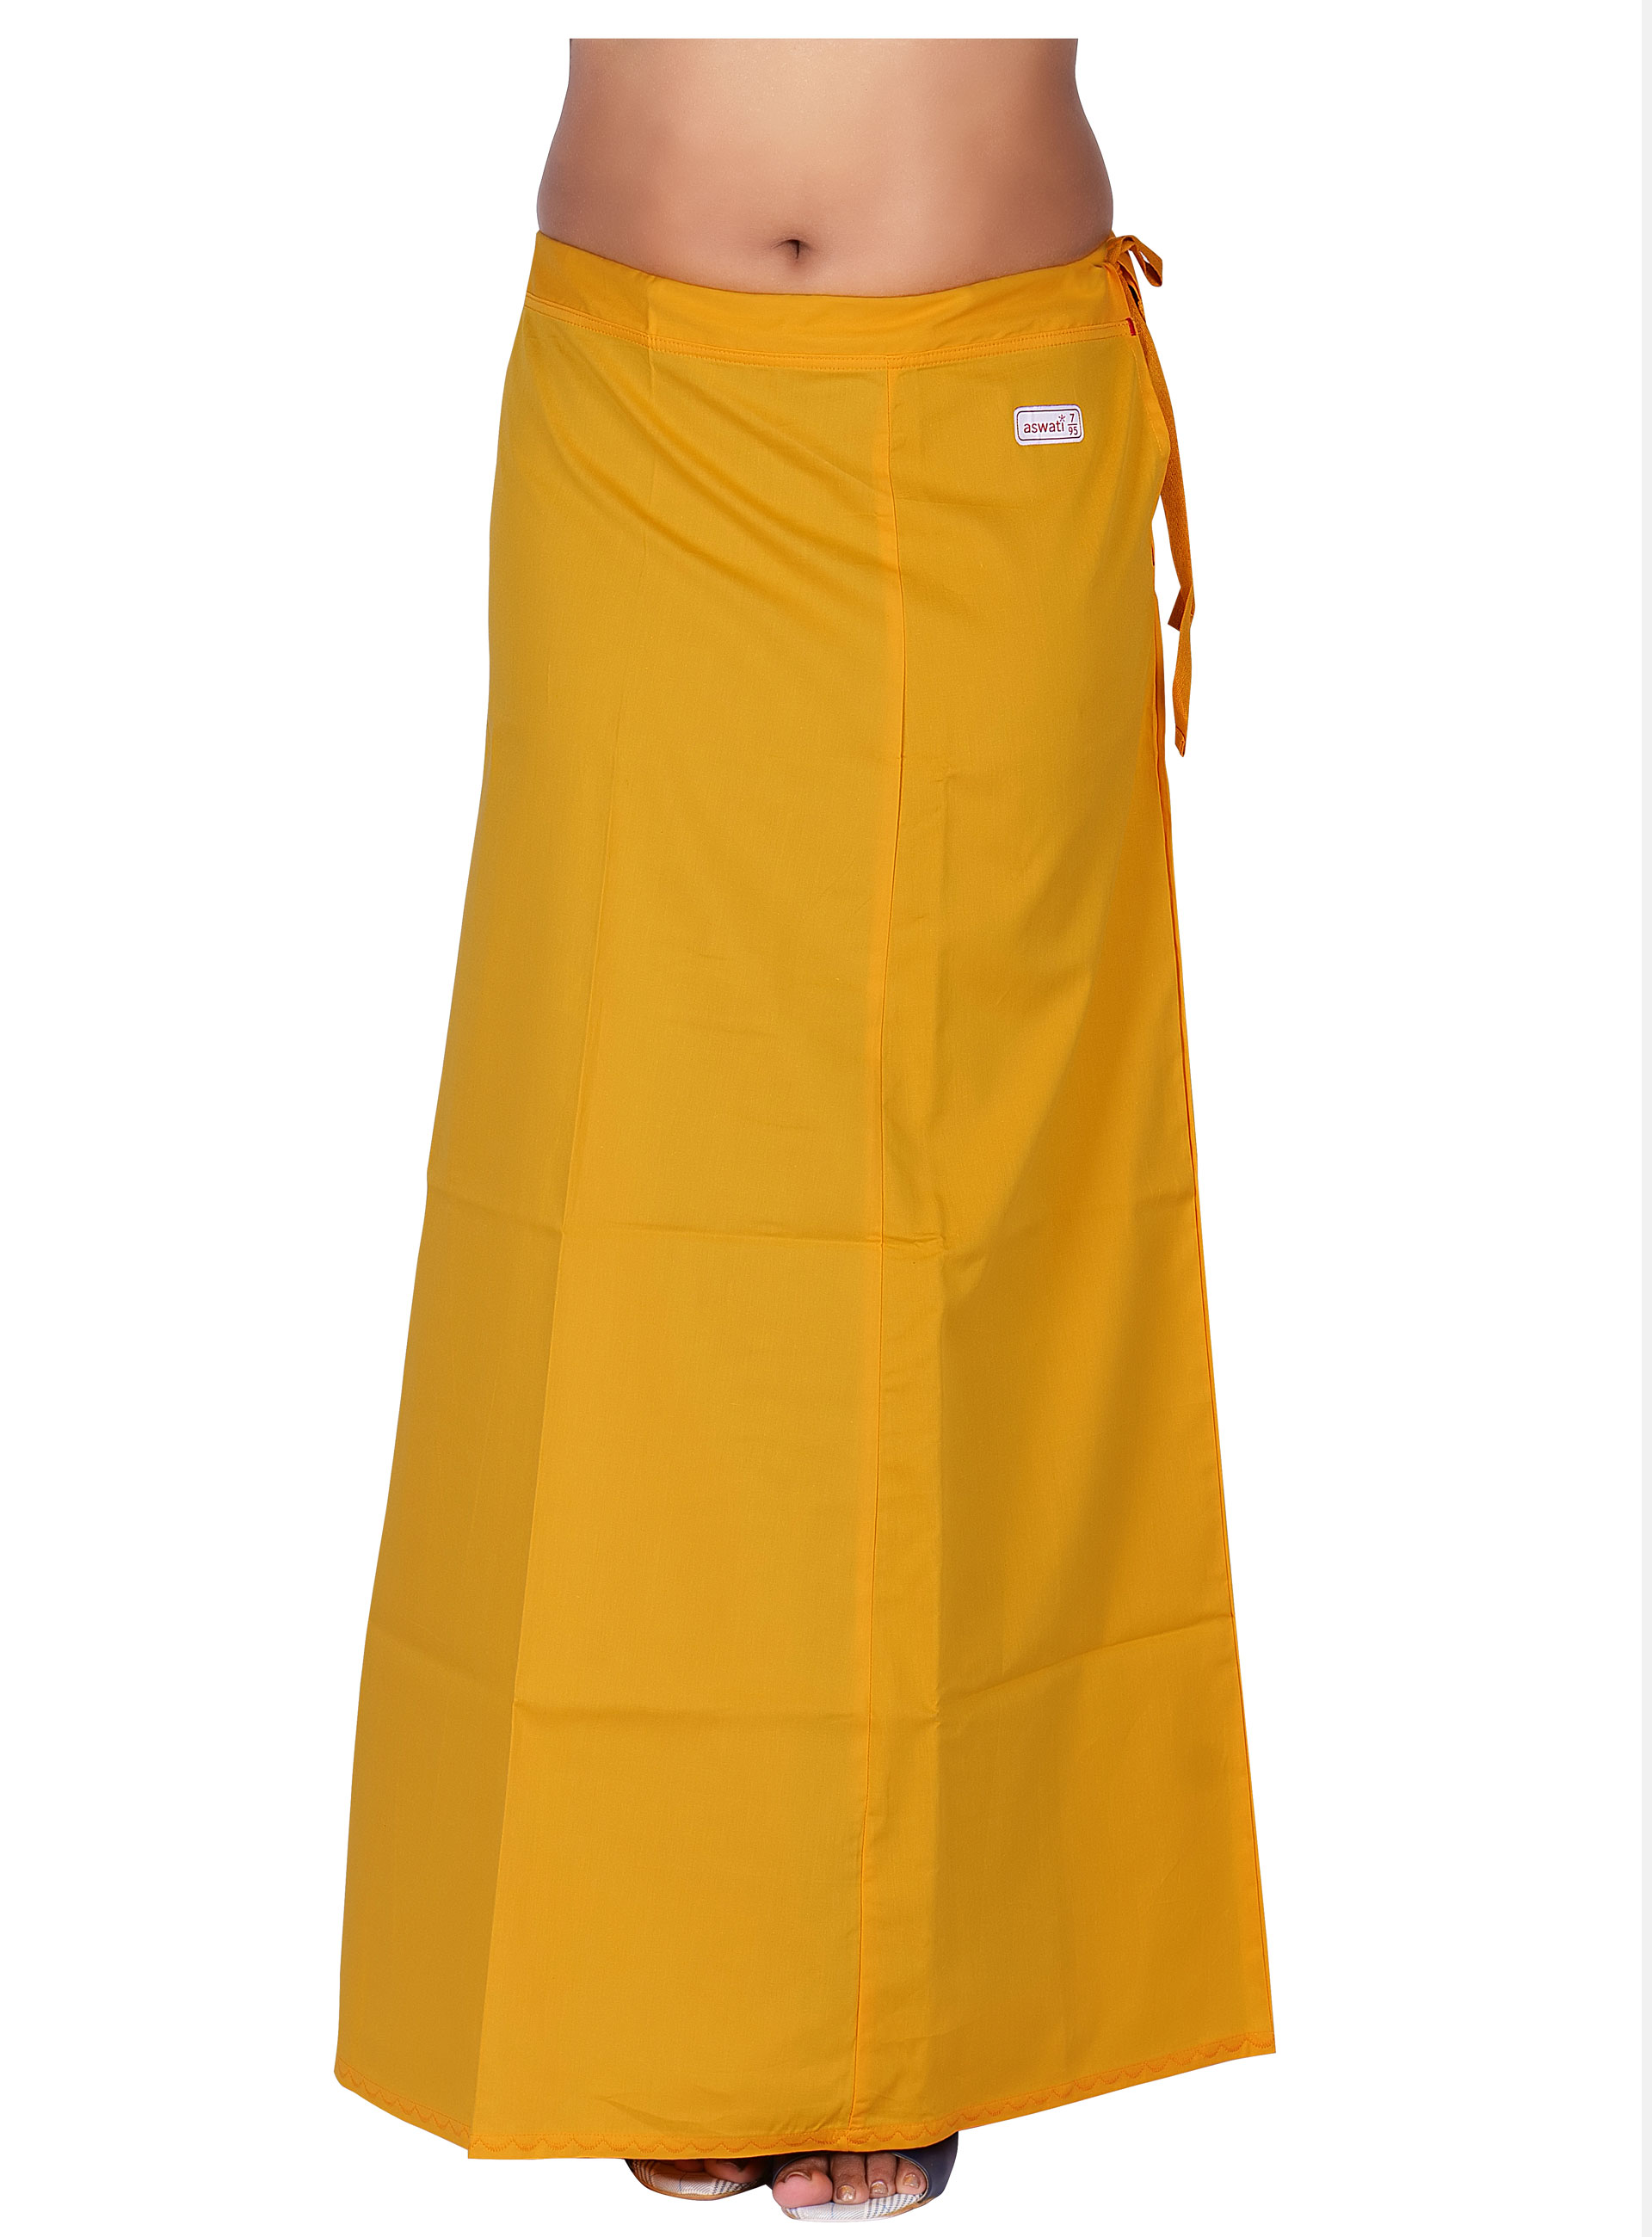 Yellow Color Aswati Premium Inskirts (8 PART)